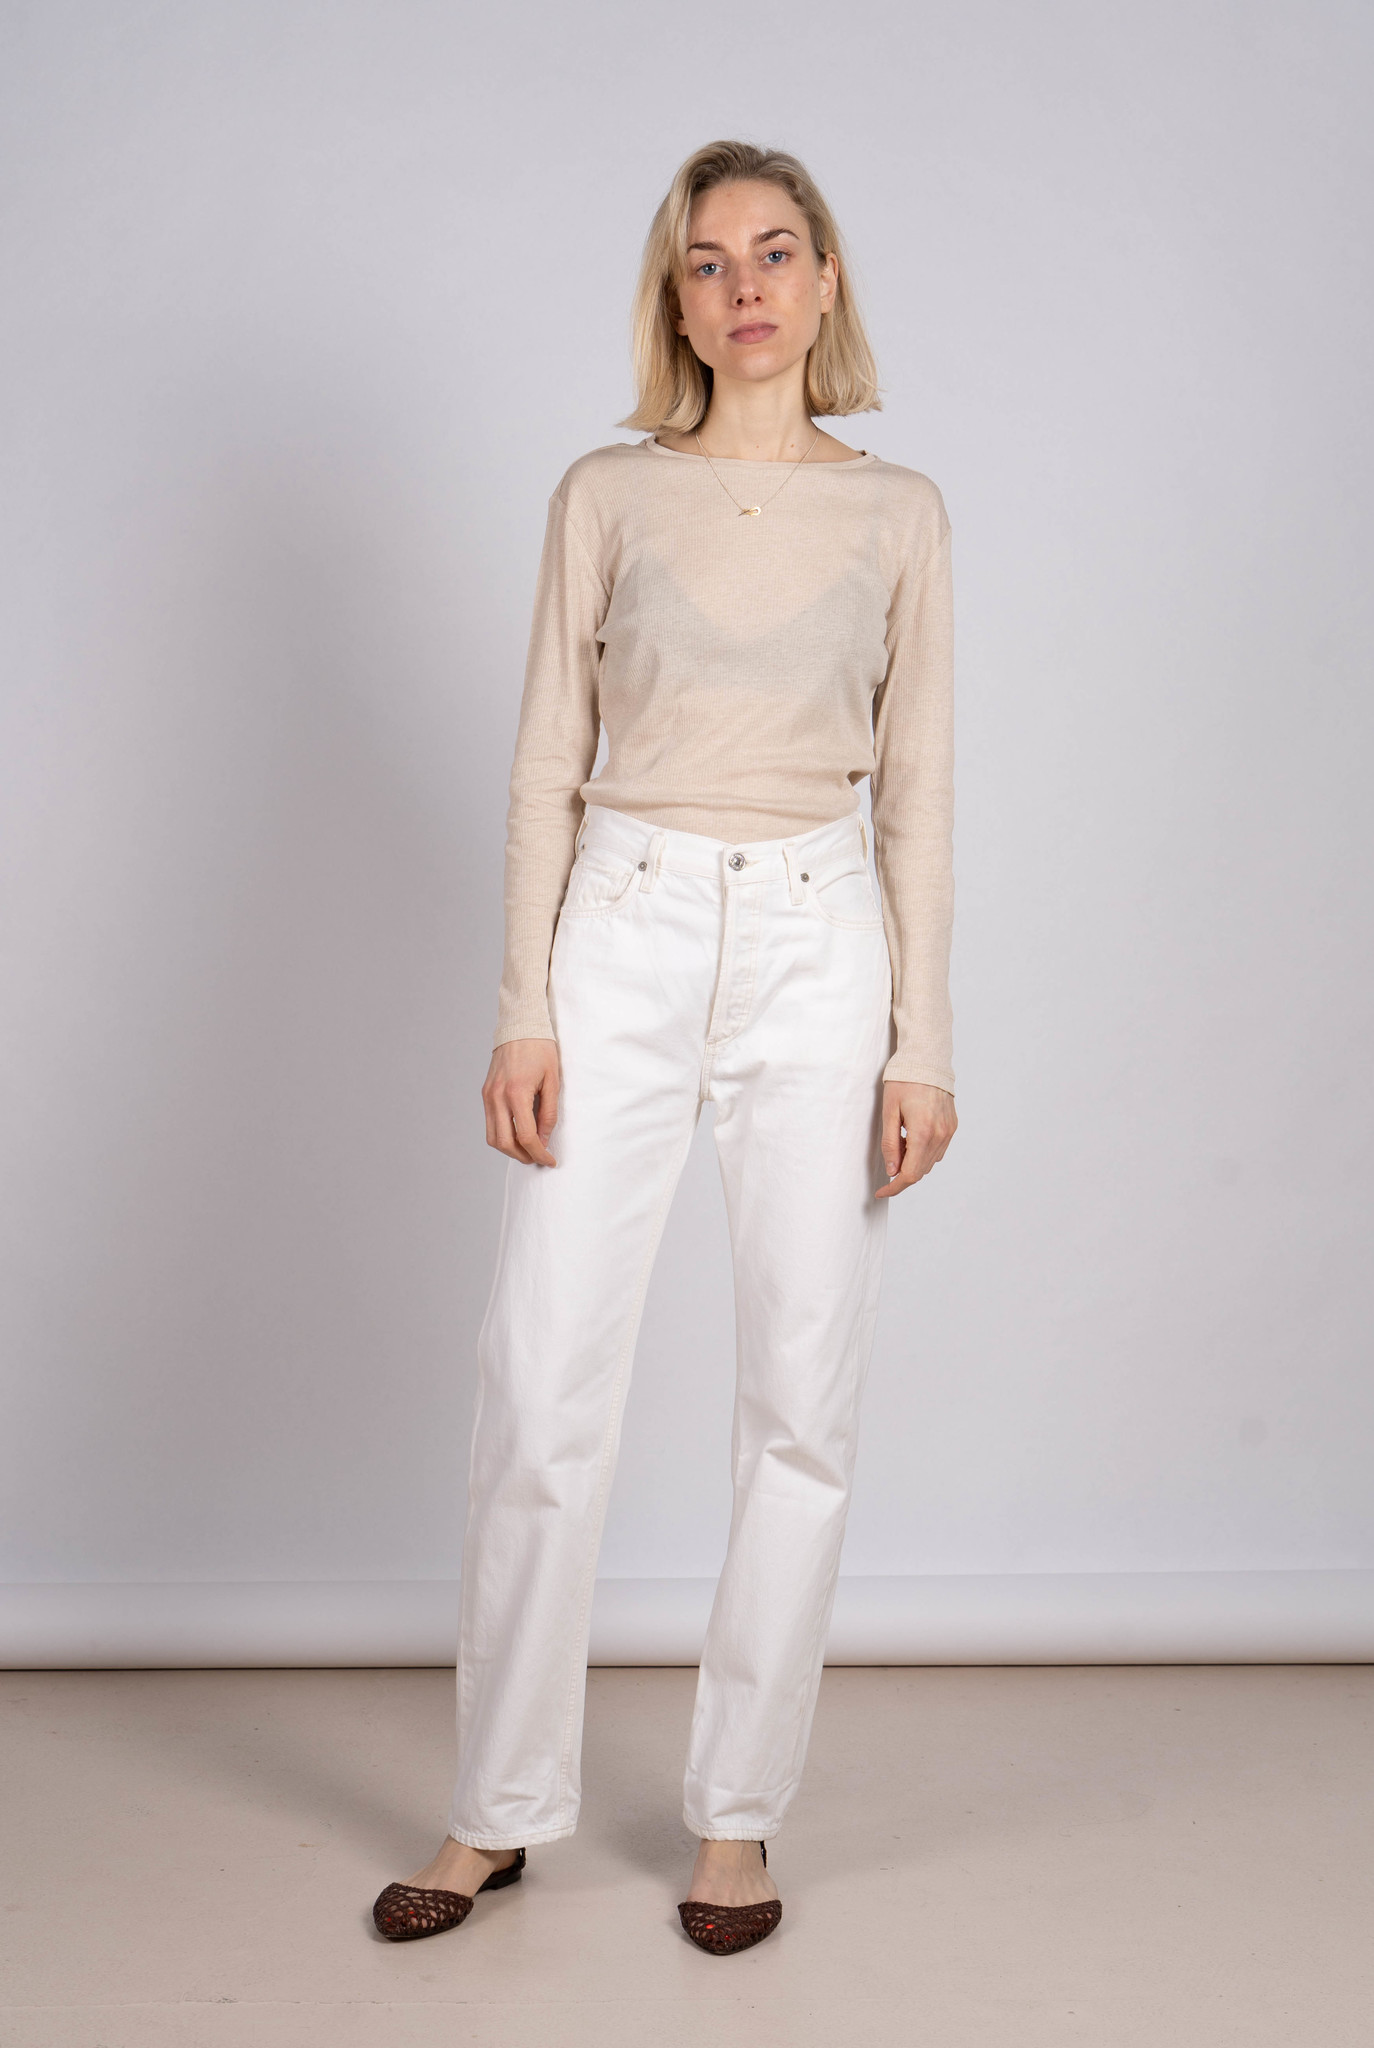 Reese jeans in Idyll